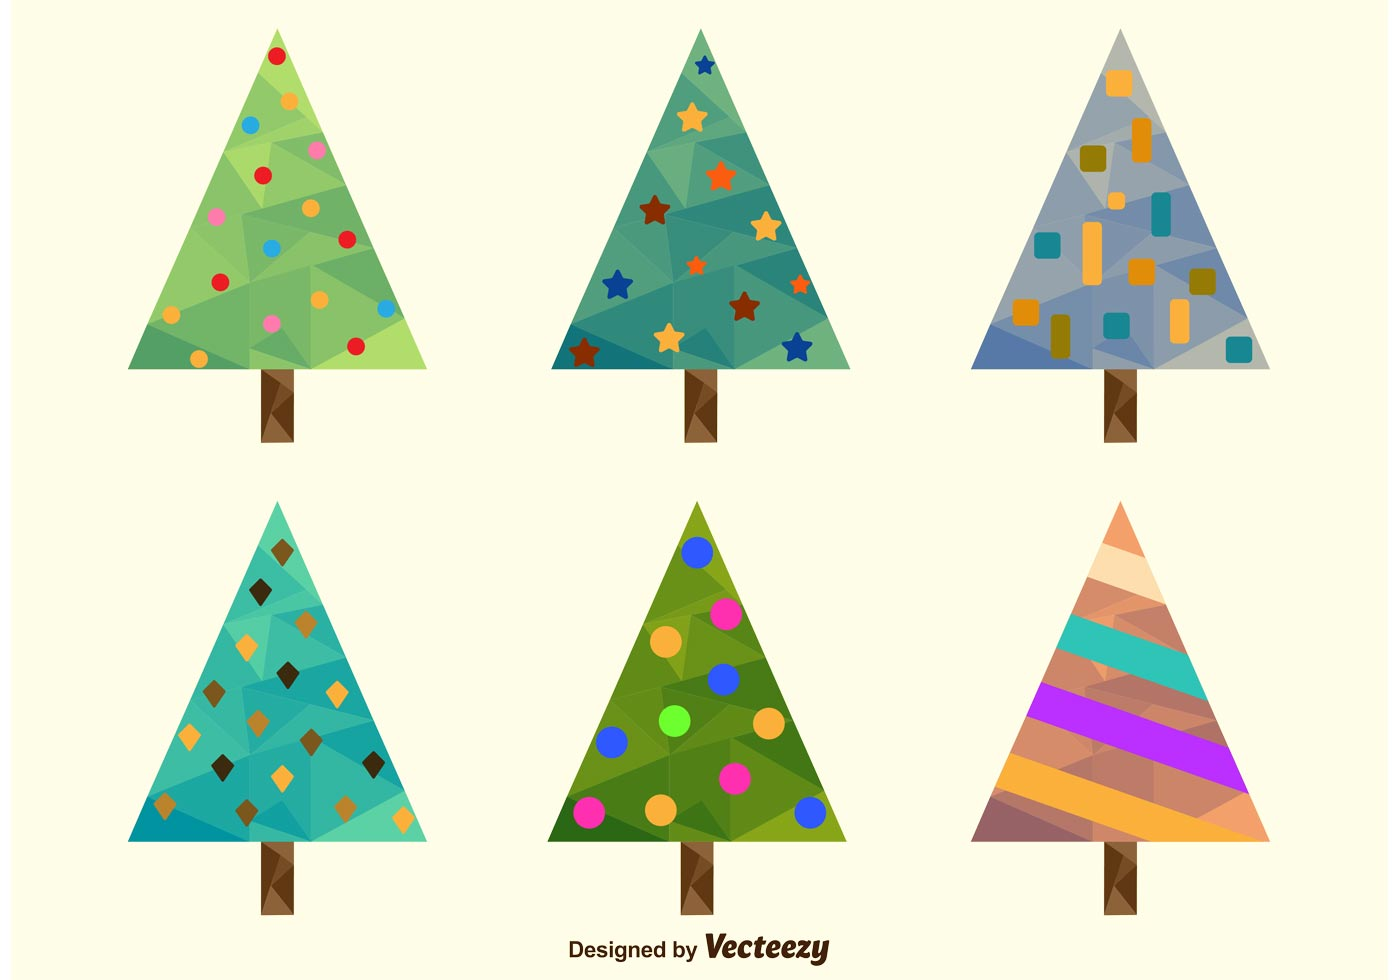 polygonal christmas tree free vector art 11134 free downloads - Polytree Christmas Tree